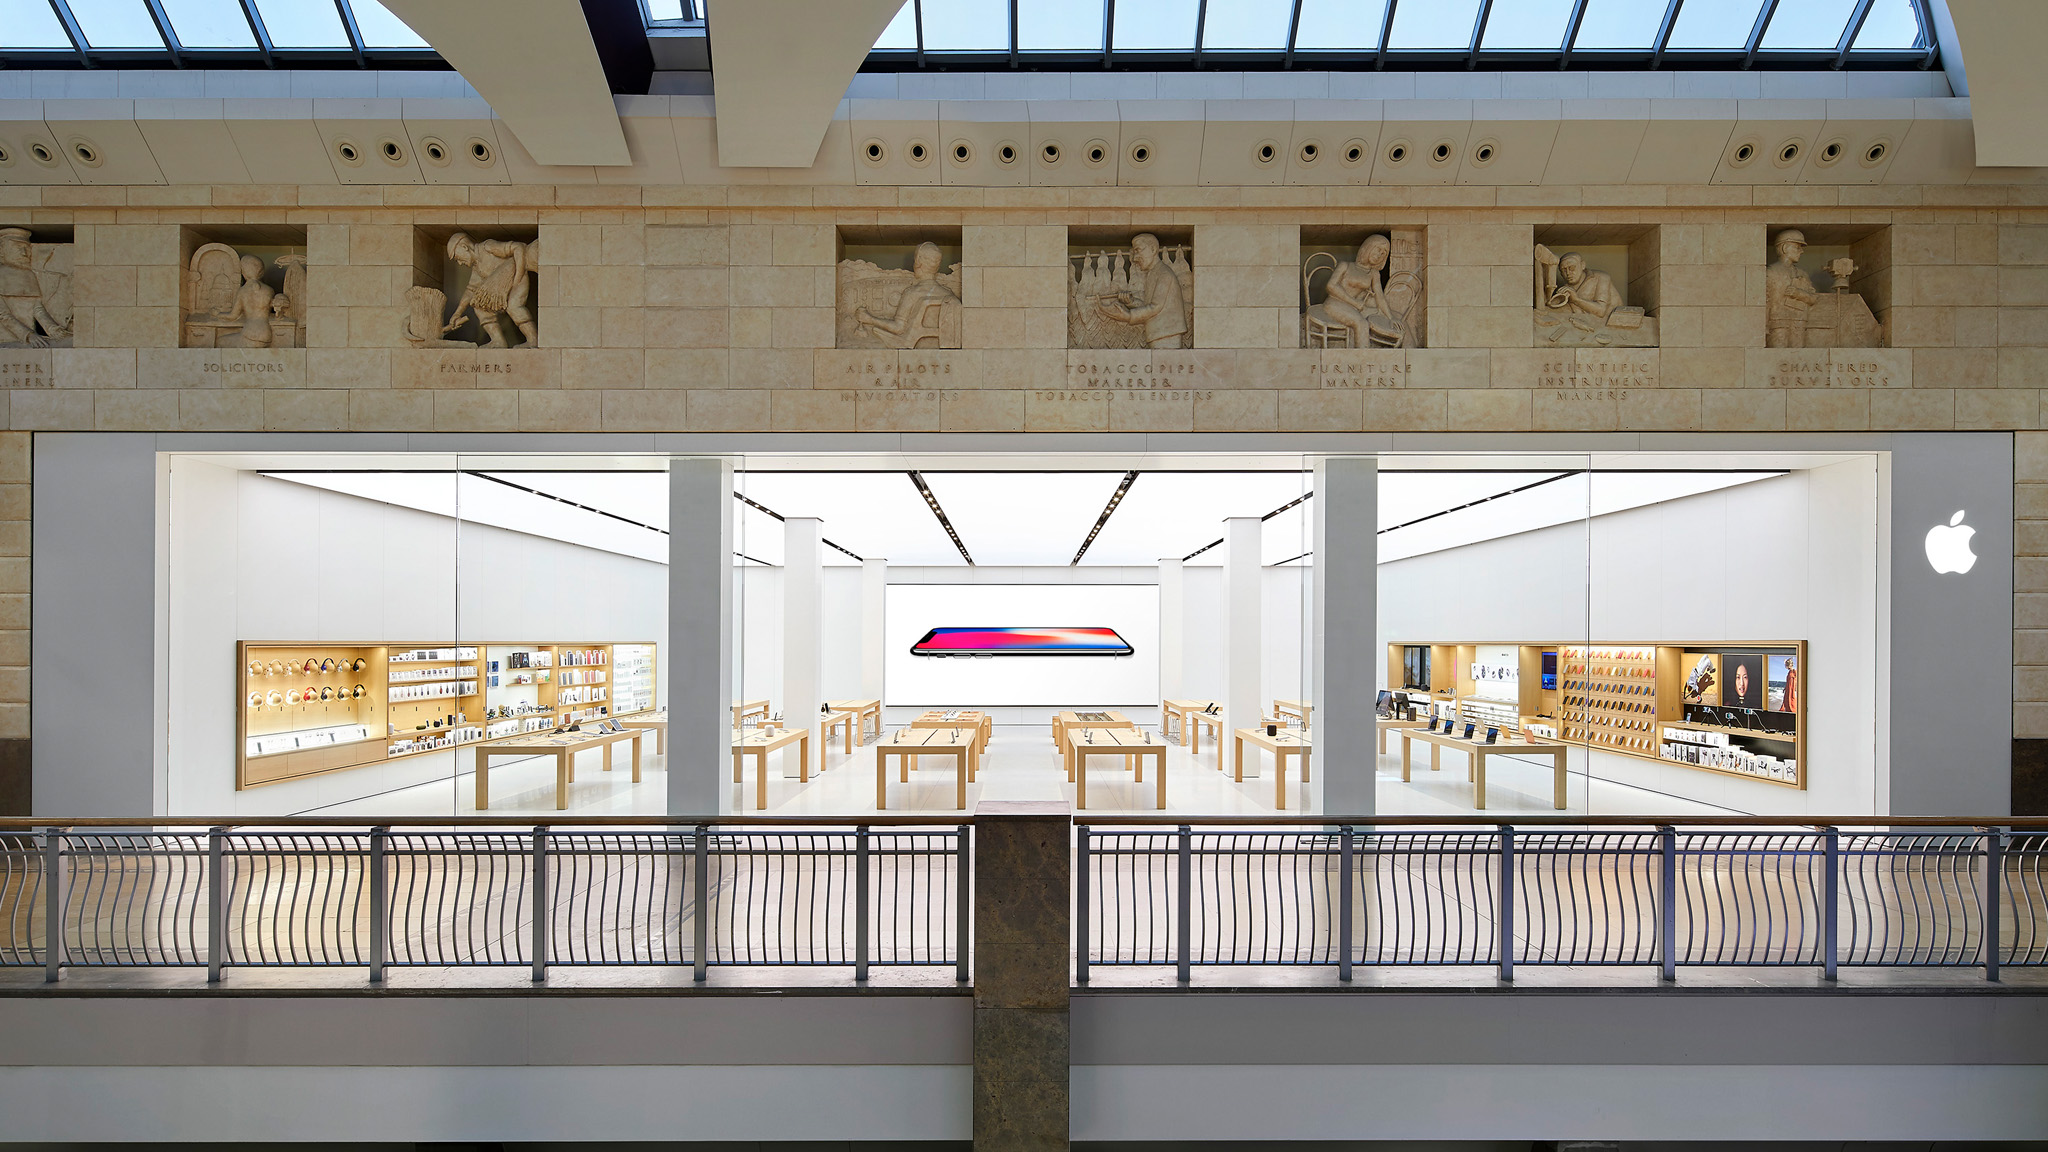 d3afe81a778 Architecture, creativity, community: A field guide to Apple retail ...